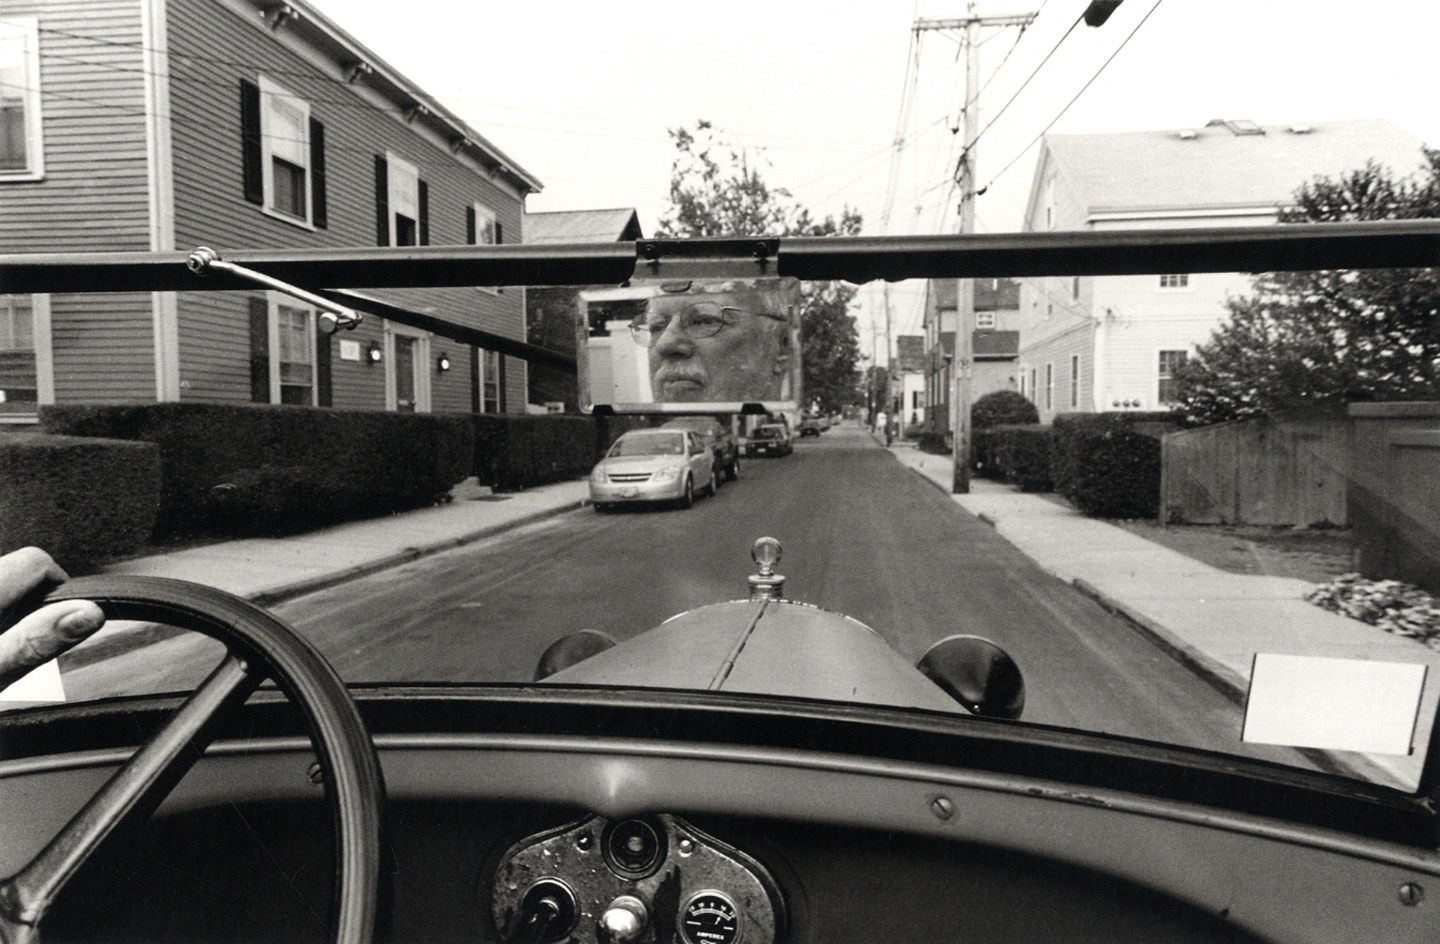 Lee Friedlander: The Human Clay (4-Volume Set: Portraits; Children; Street; Parties) [SIGNED]